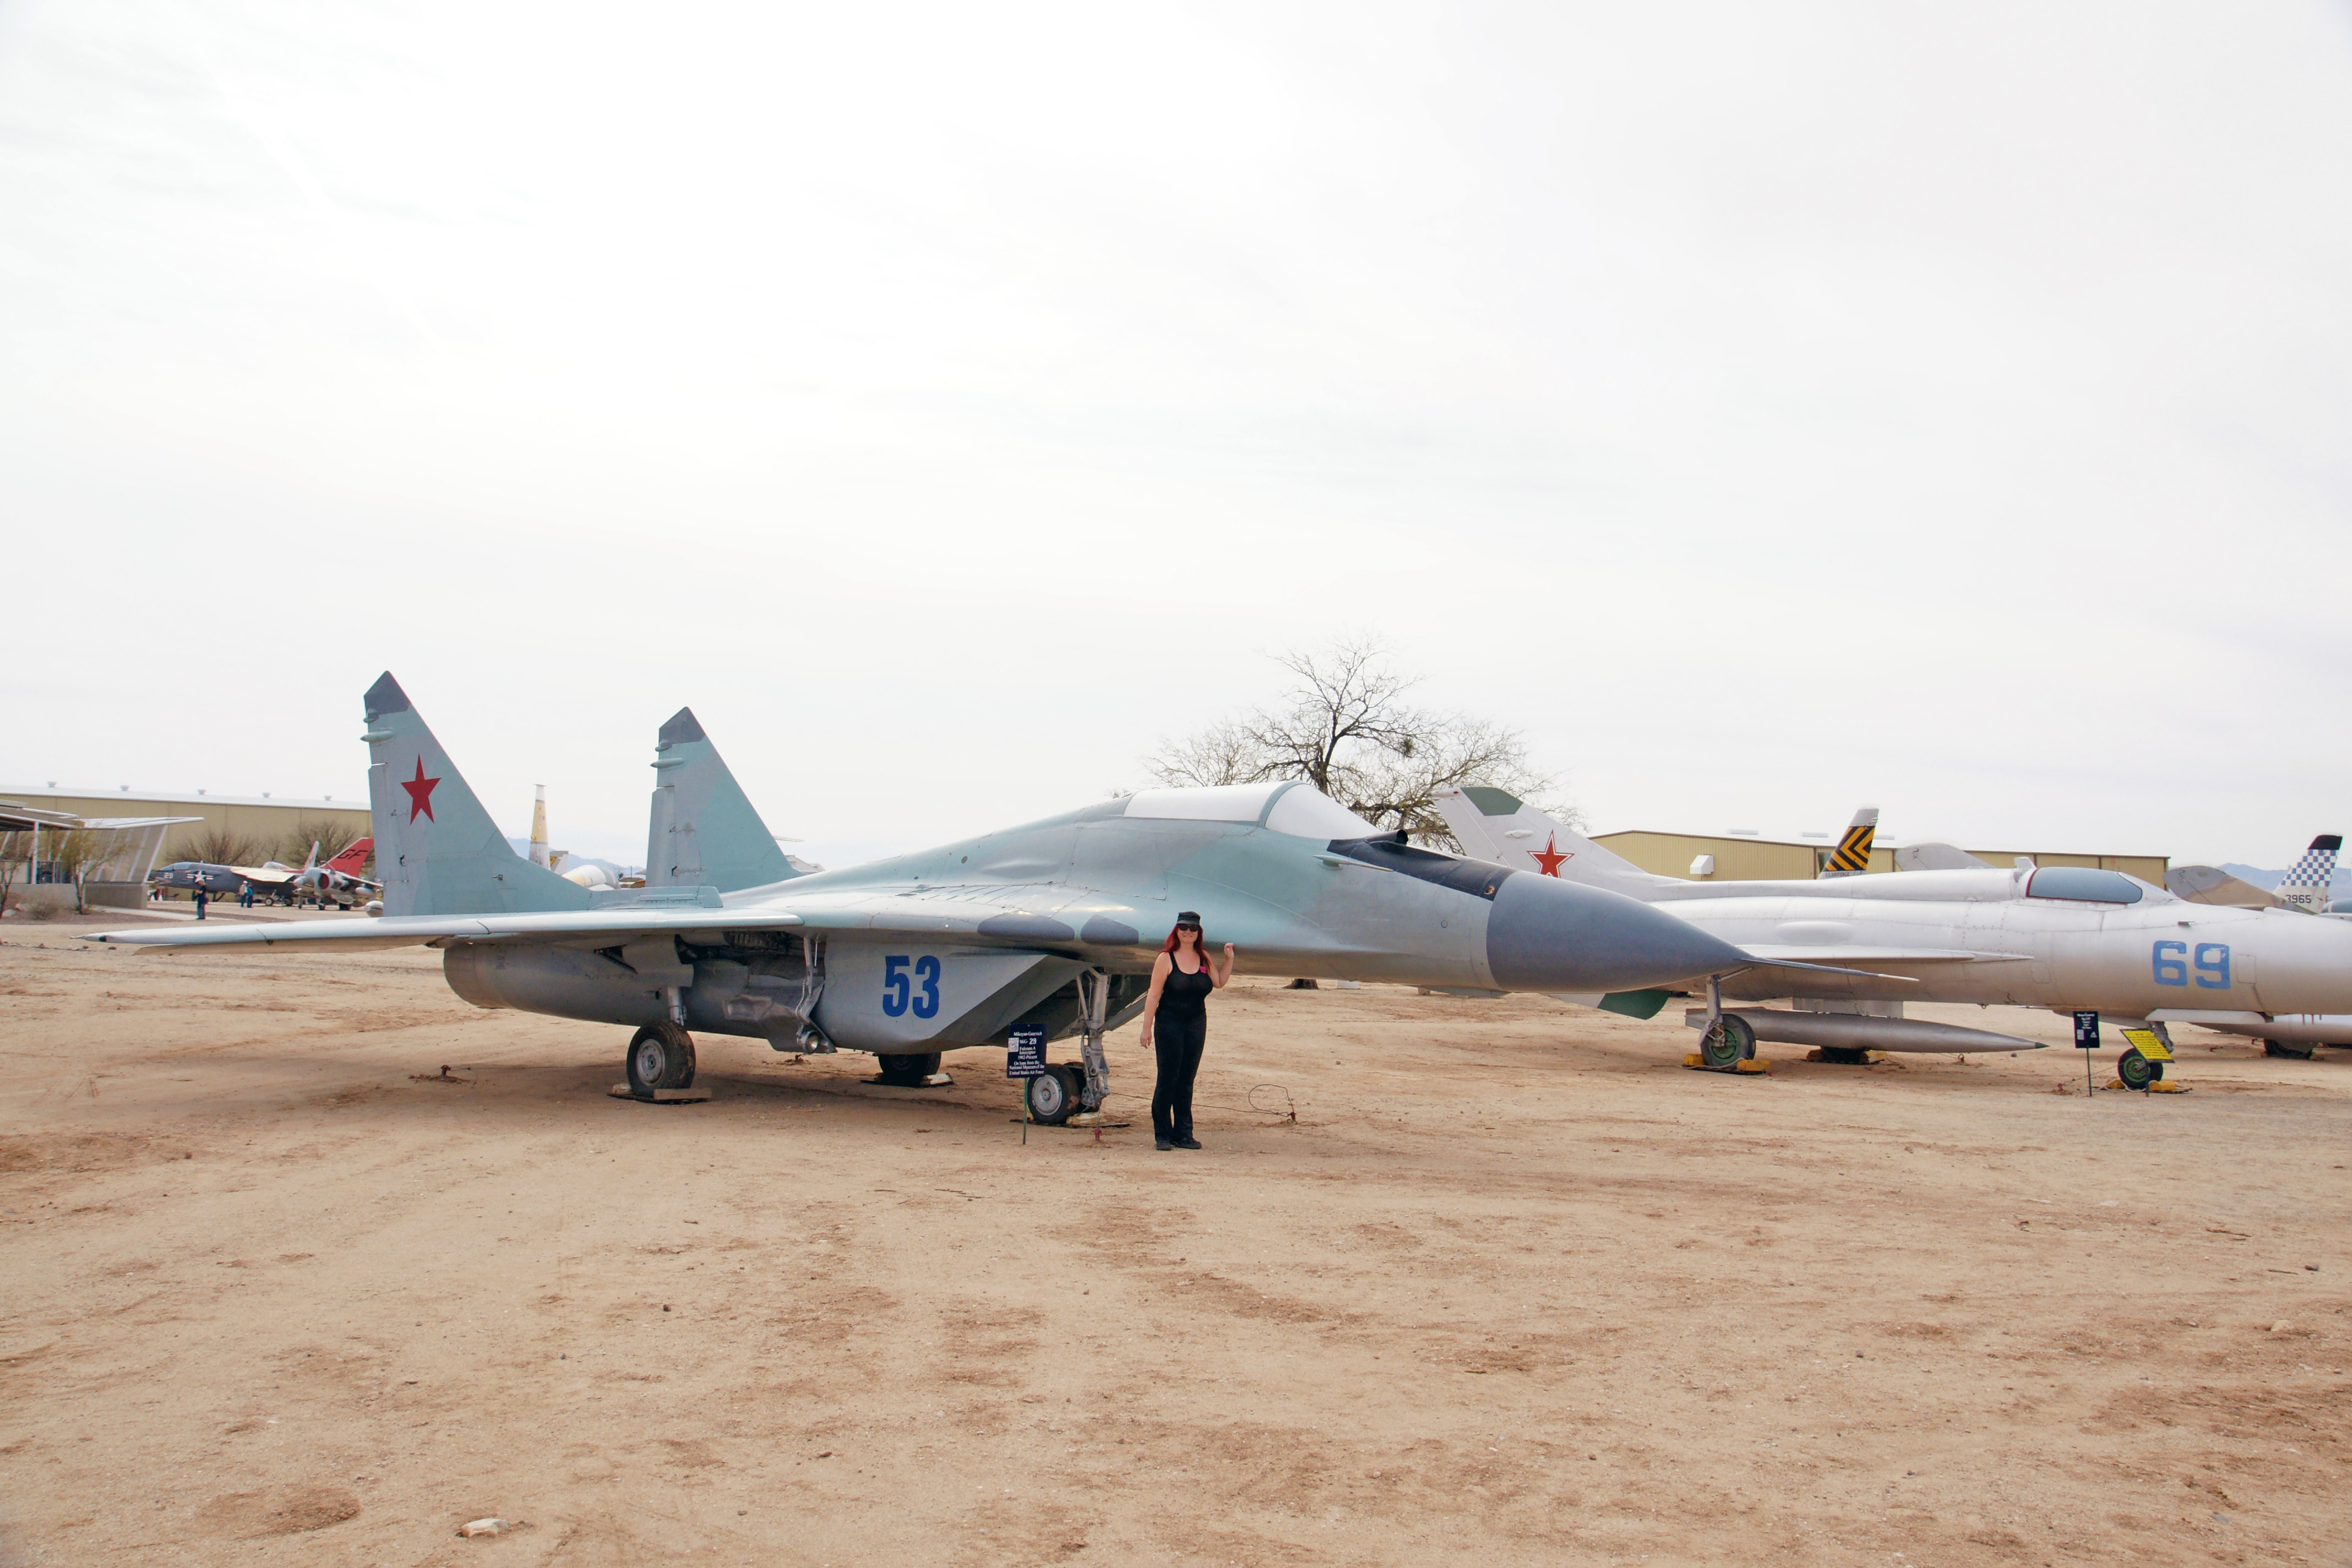 Mikoyan-Gurevich Mig-29 Fulcrum-A Front